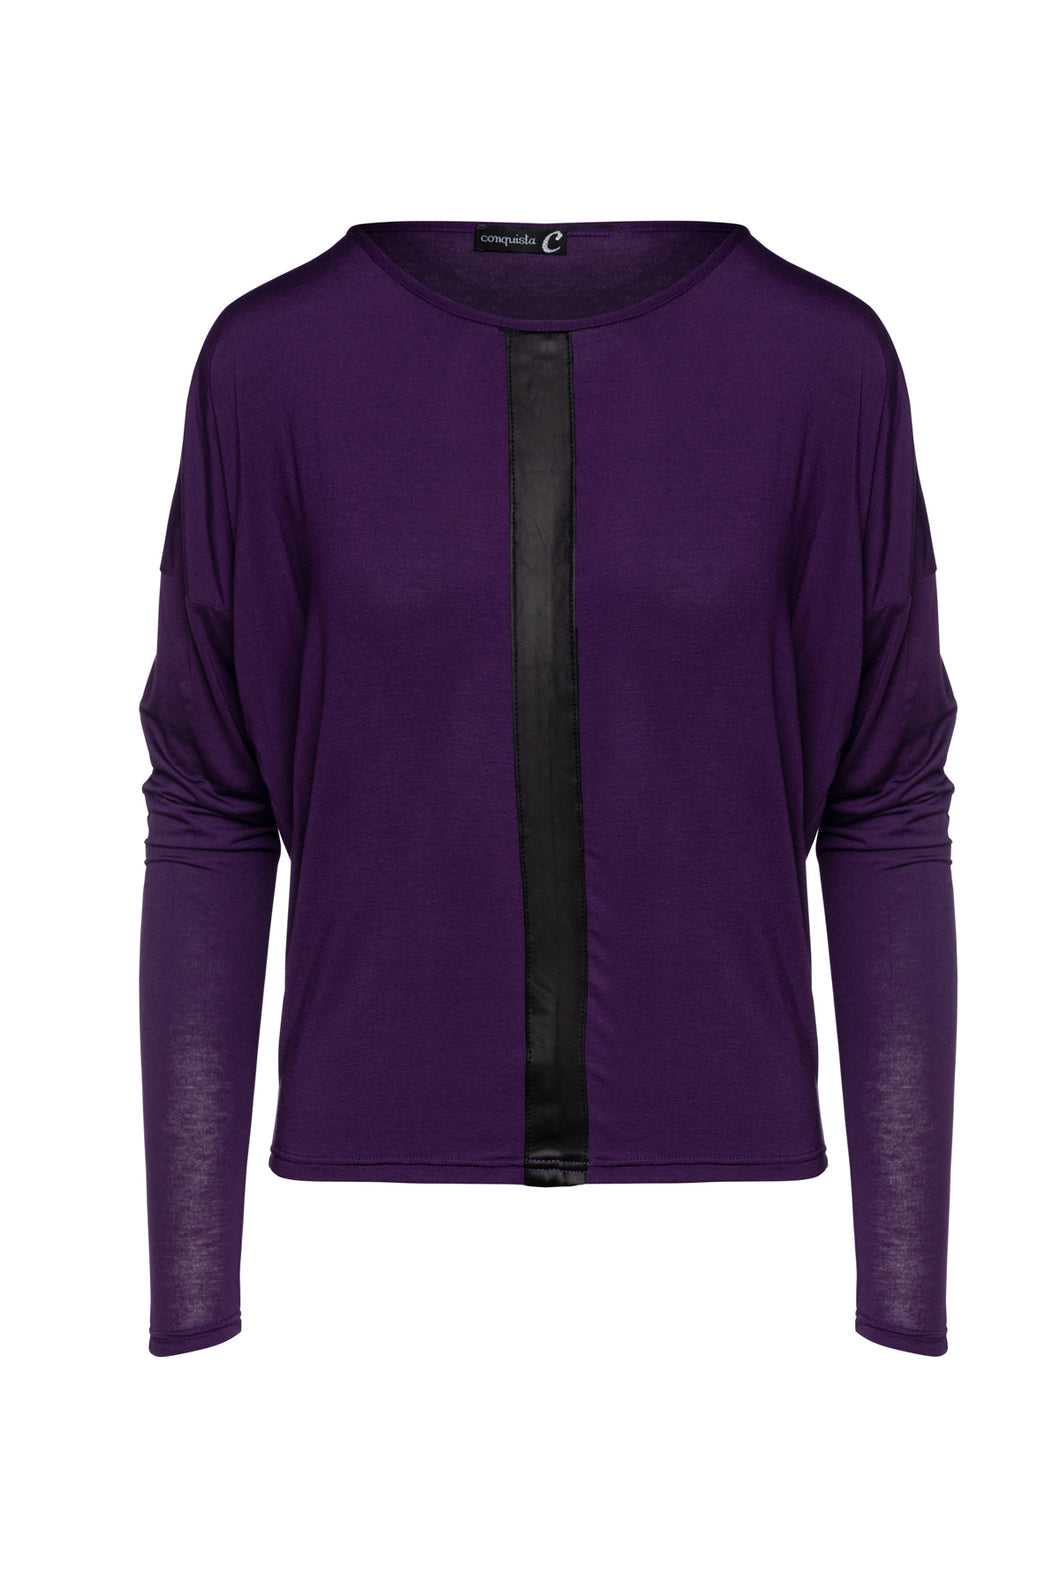 Ink Colour Batwing Top with Faux Leather Detail